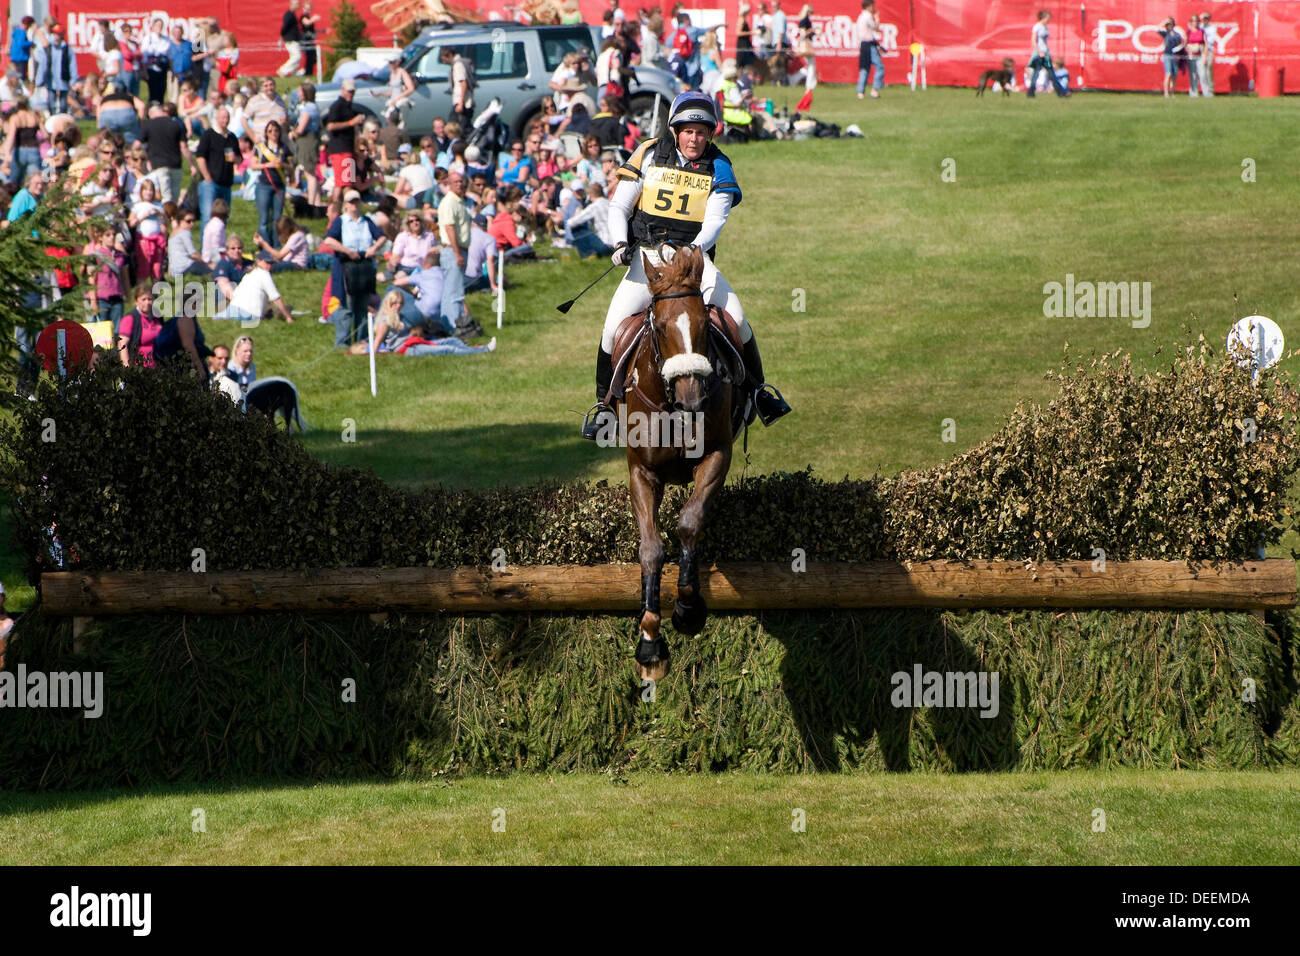 horse and rider at the blenheim horse trials - Stock Image